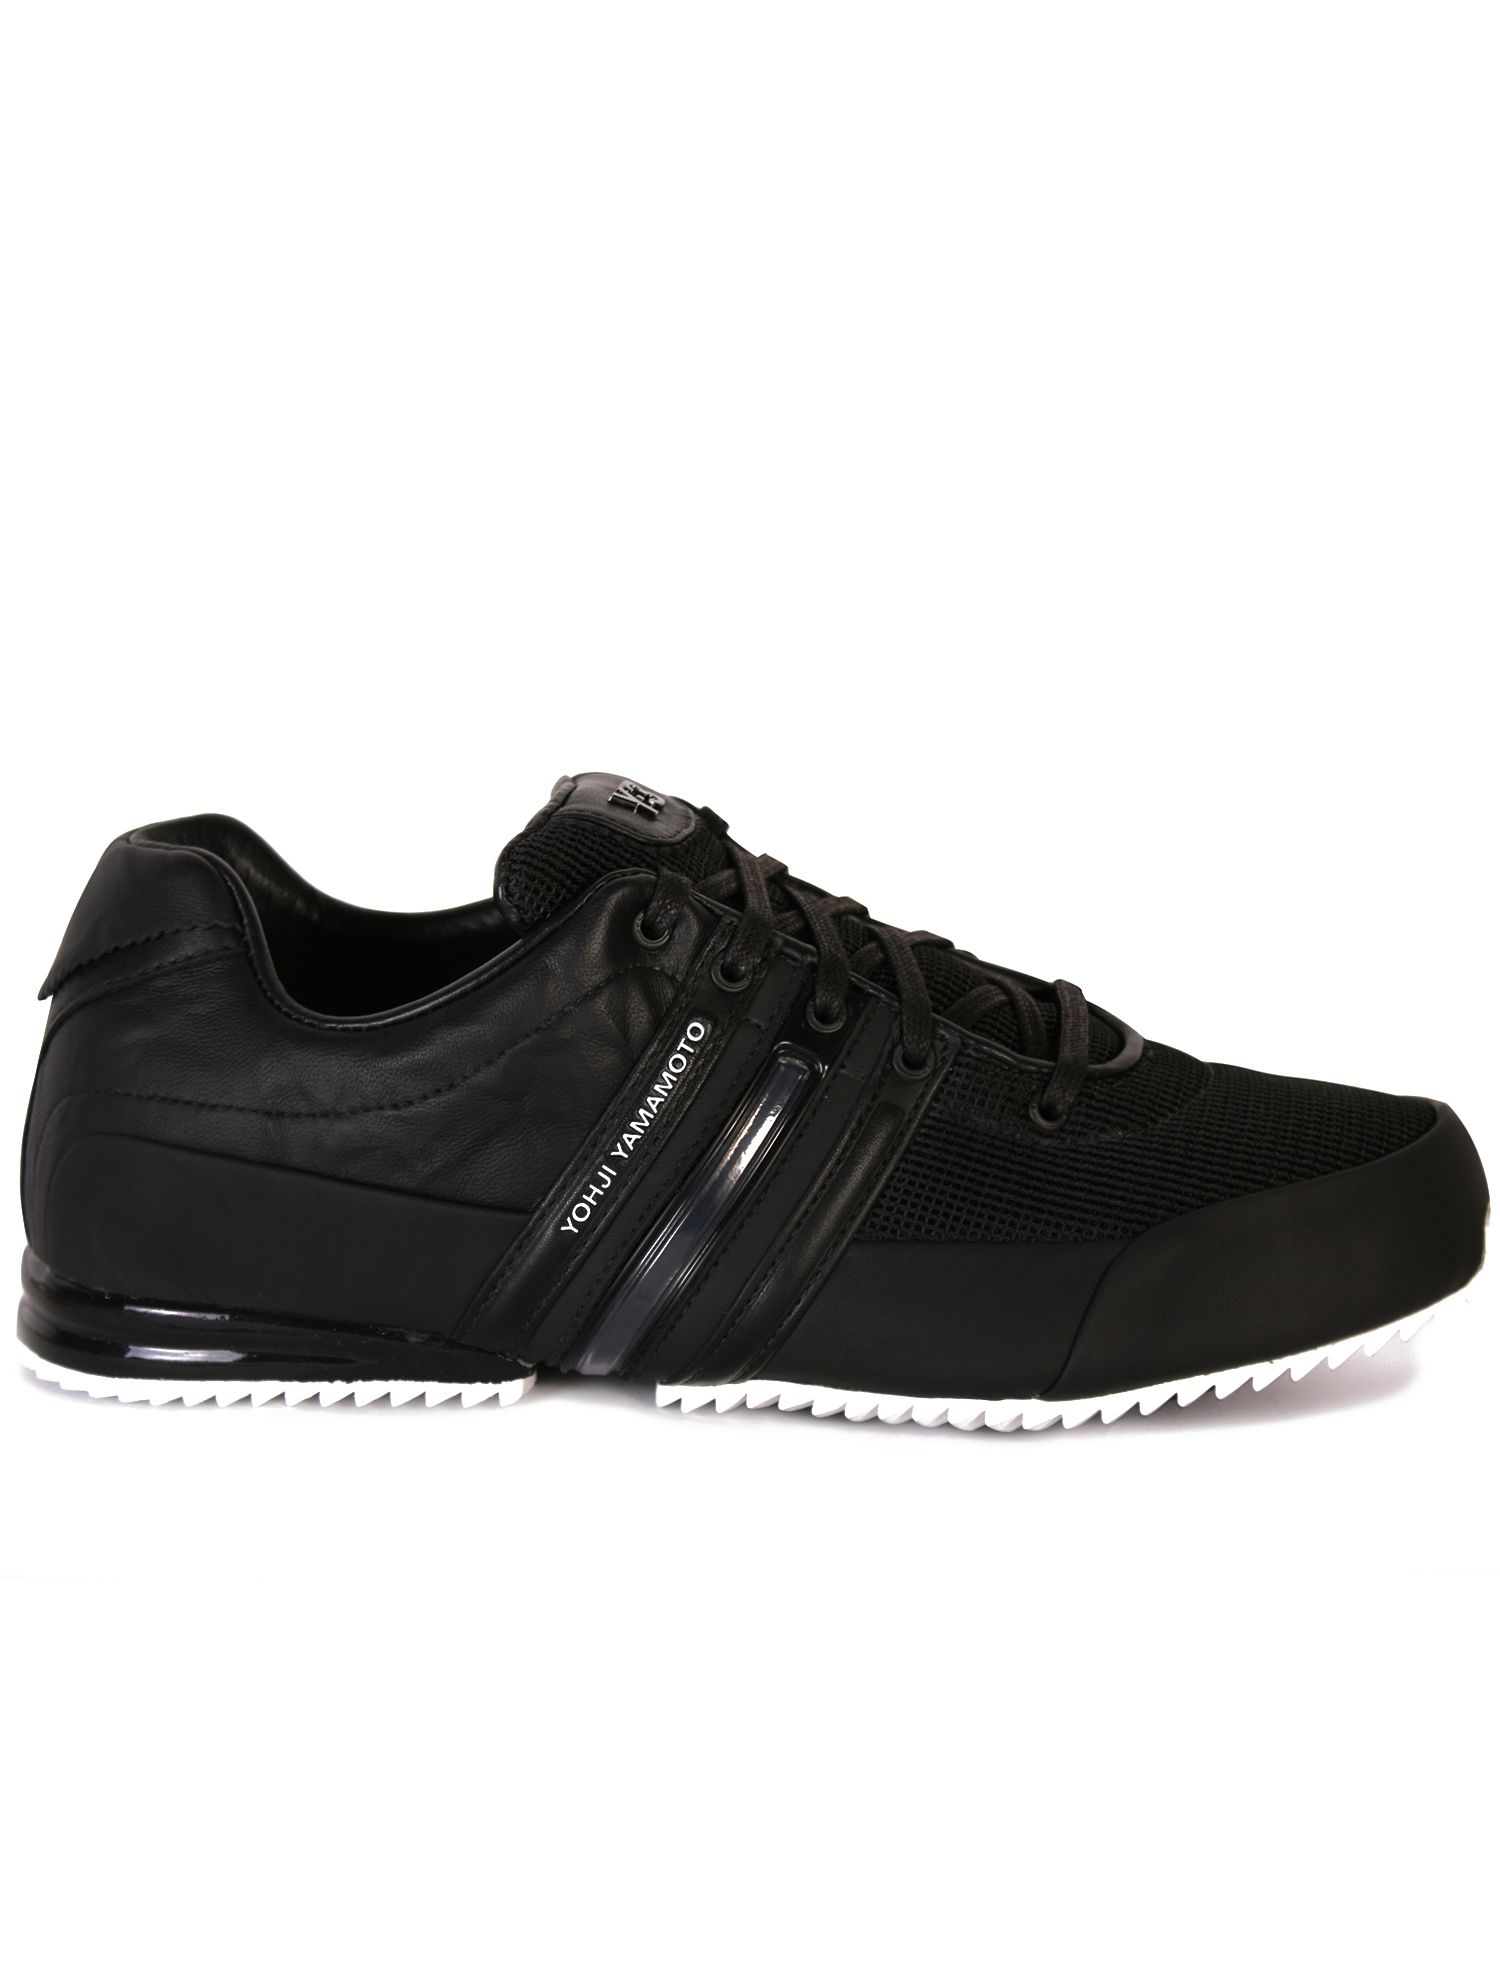 Y3 Black Sprint Trainers | Leather